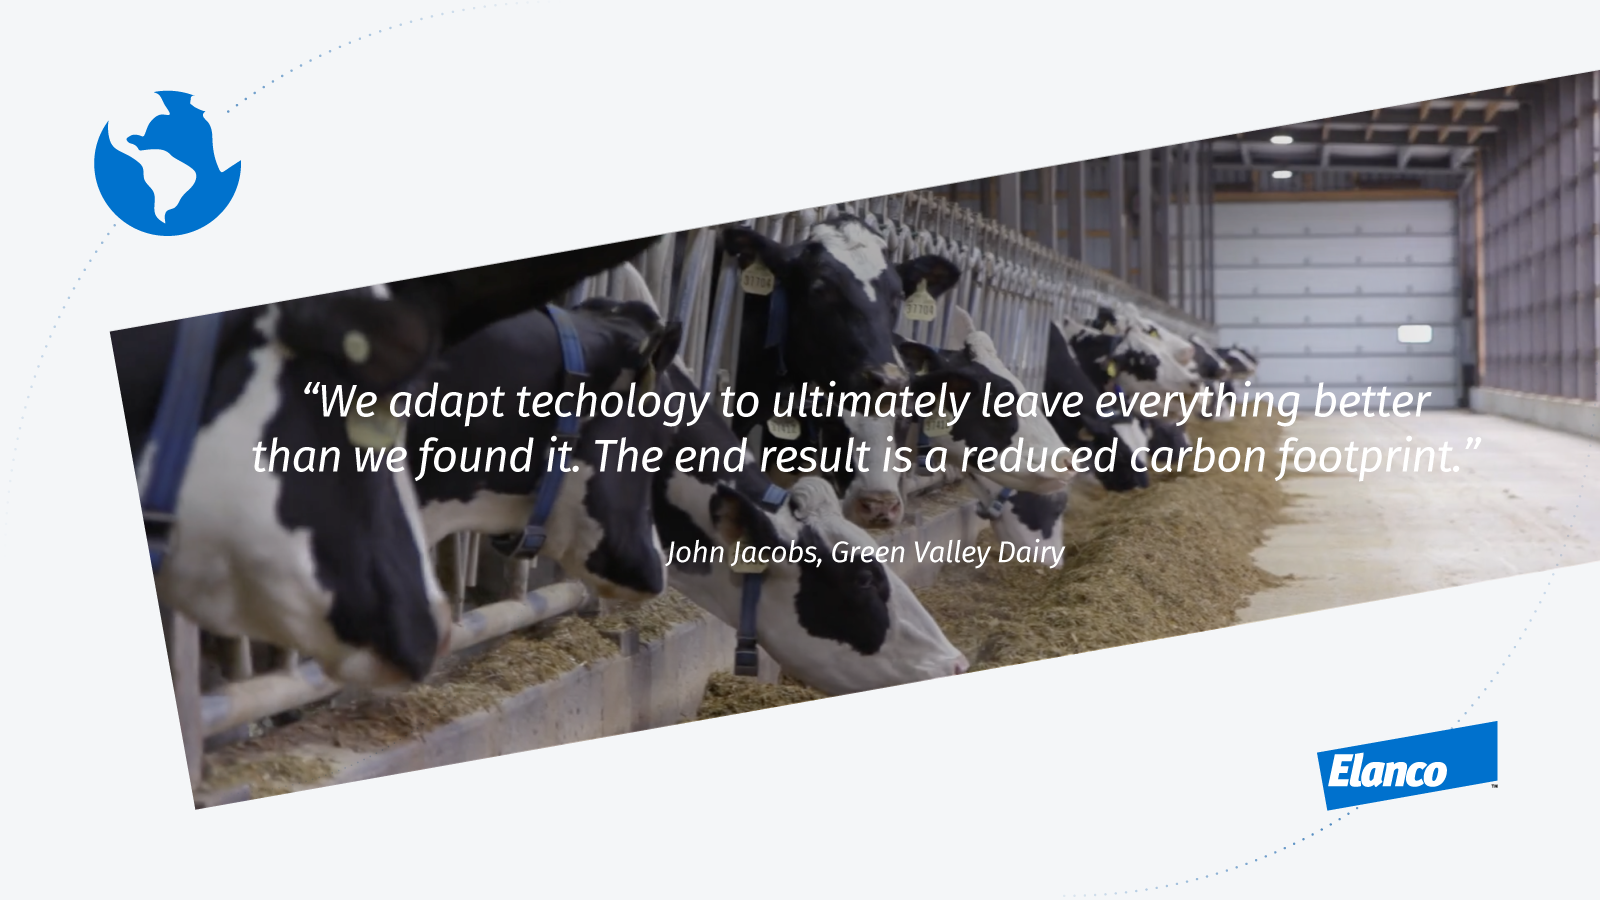 quote icon from John Jacobs of Green Valley Dairy